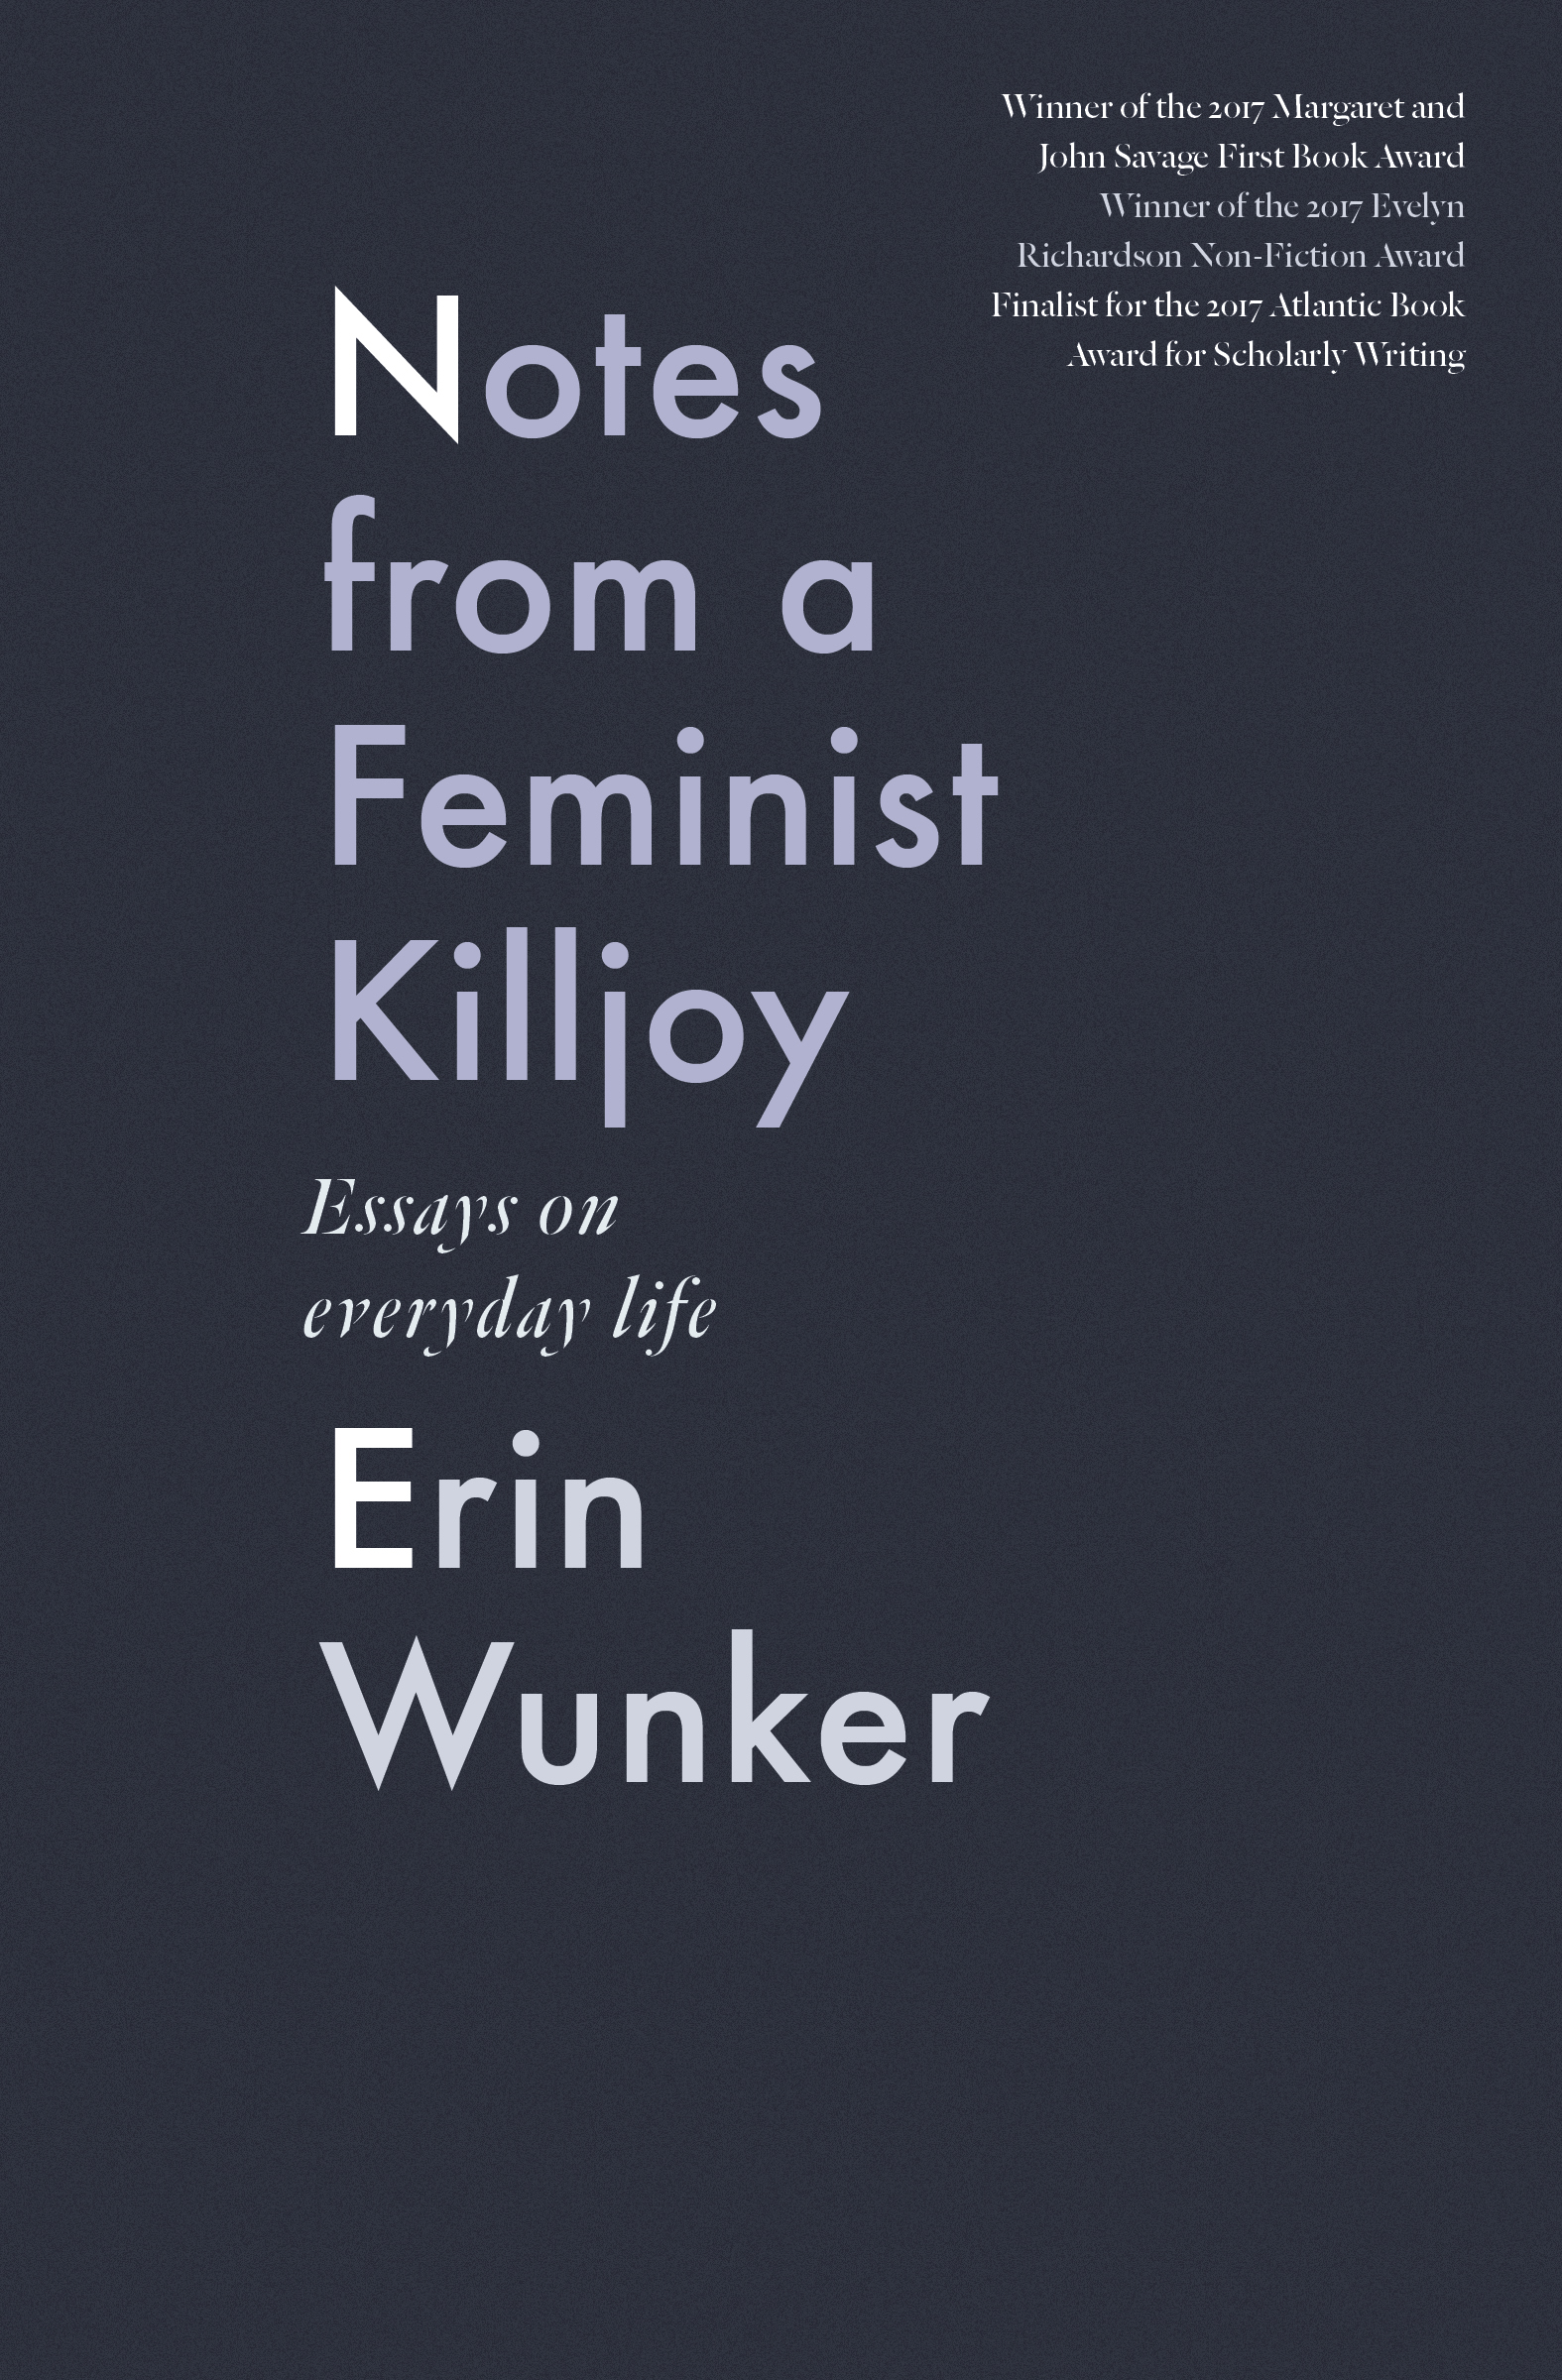 notes from a feminist killjoy essays on everyday life by erin  notes from a feminist killjoy essays  essay on modern science also argumentative essay proposal sample proposal essay